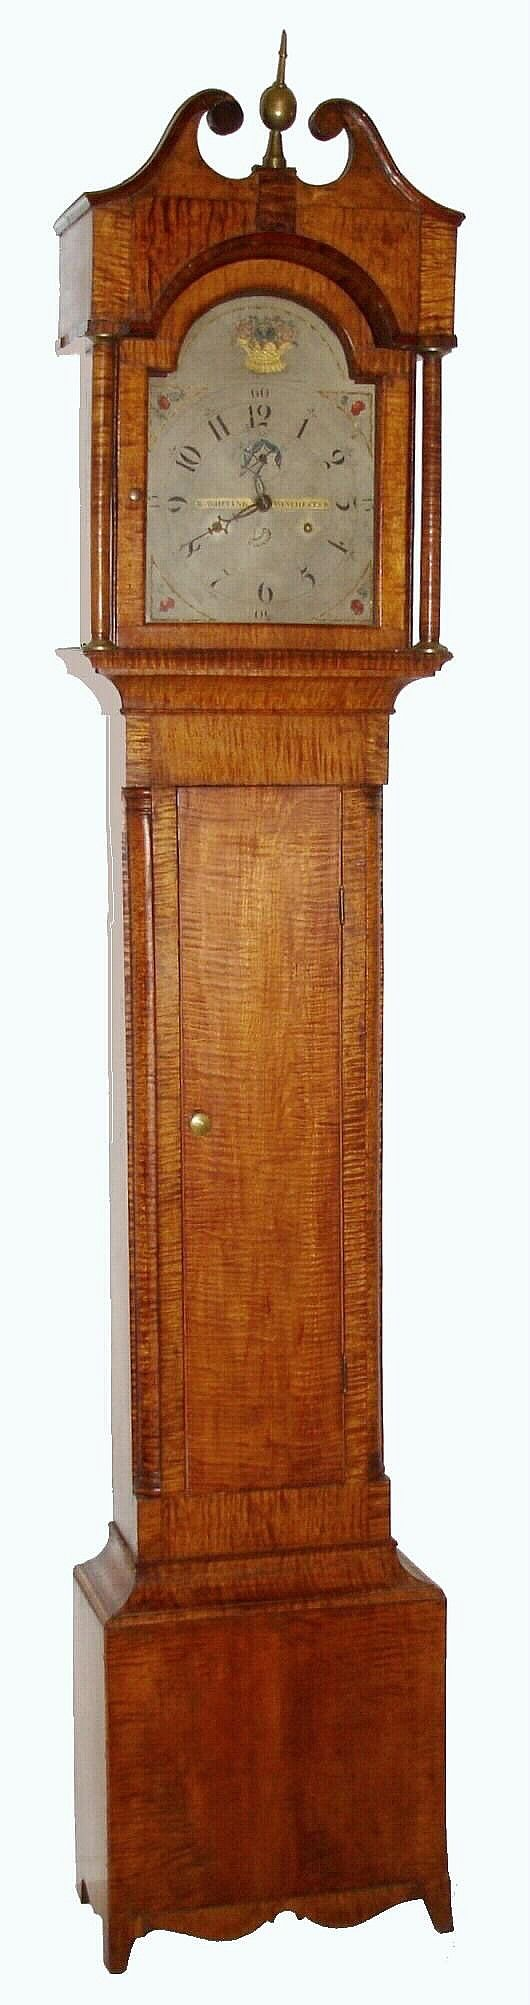 Find this Pin and more on Federal Furniture by shapewood. 1072 best Federal Furniture images on Pinterest